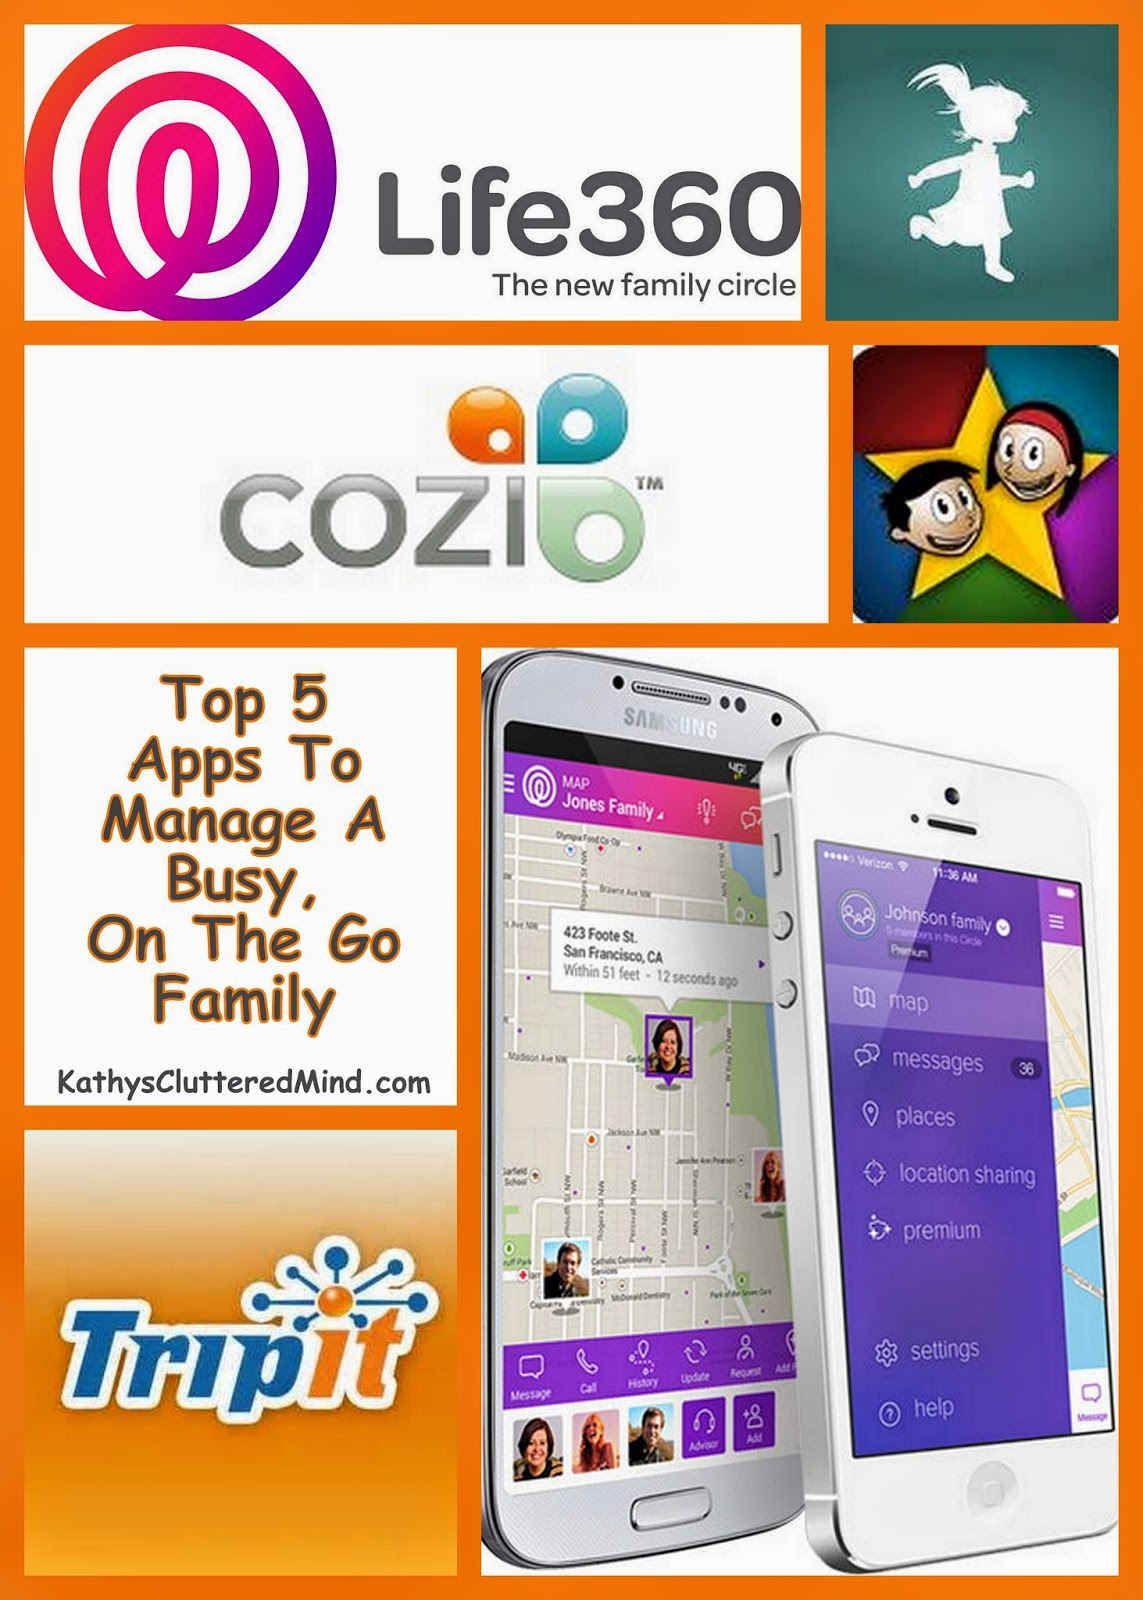 Kathys Cluttered Mind: Top 5 FREE Apps To Manage Busy, On